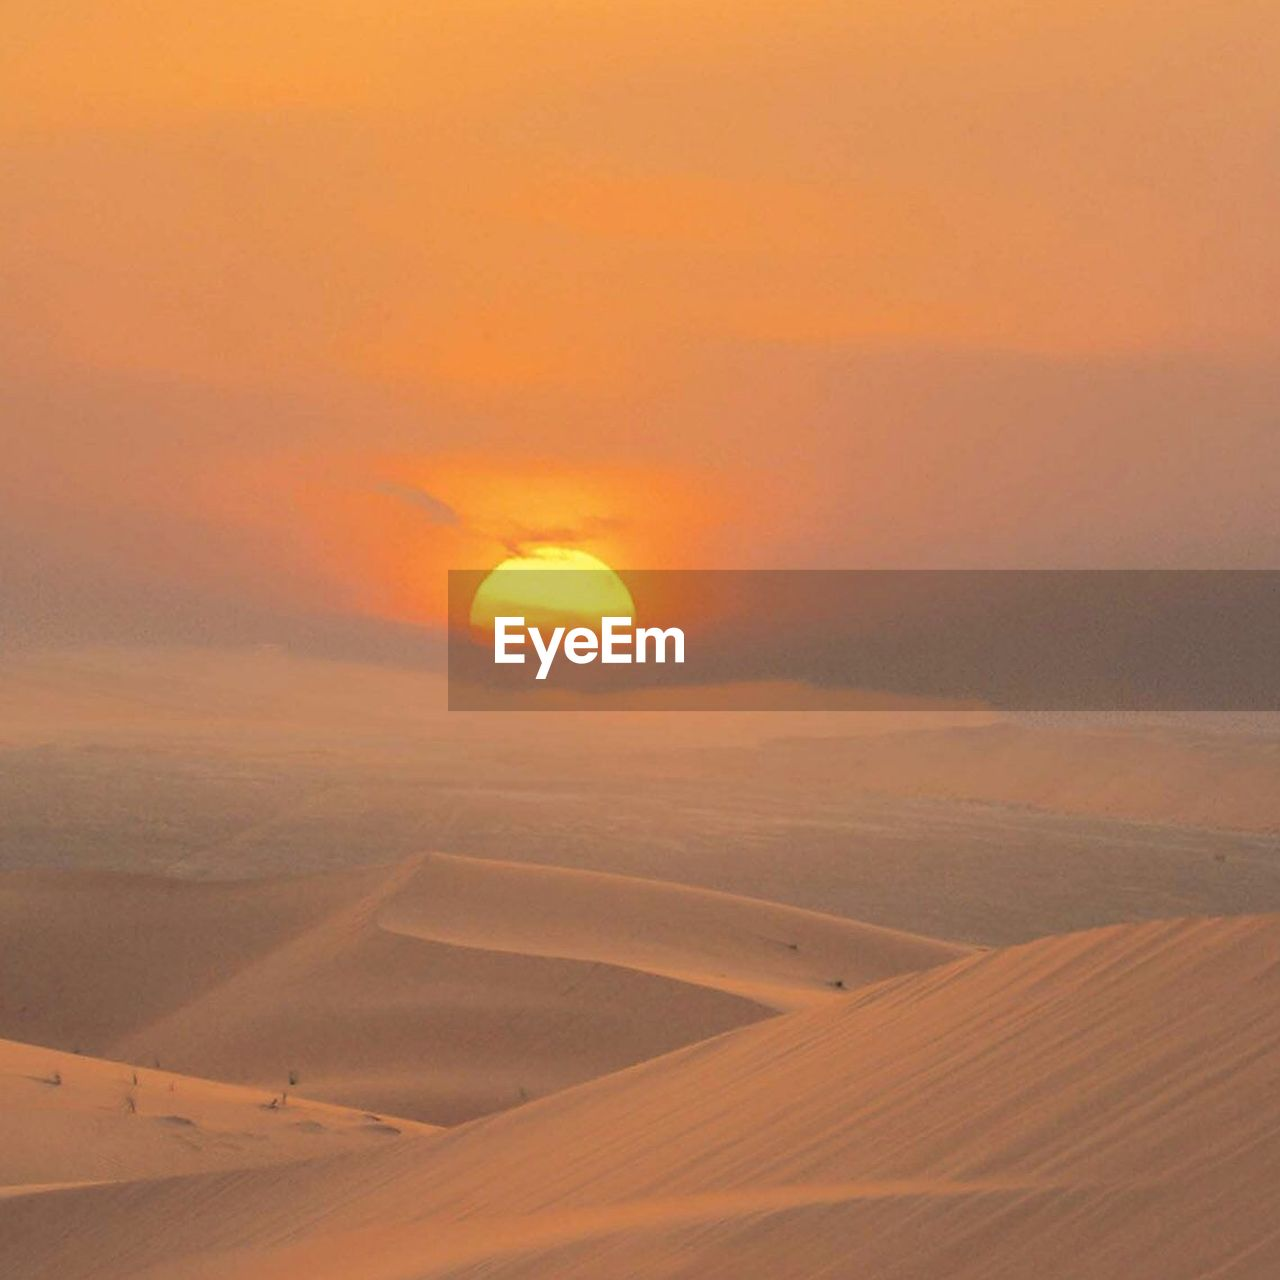 scenics, beauty in nature, nature, sunset, tranquil scene, tranquility, desert, orange color, landscape, arid climate, outdoors, no people, sun, sand dune, sky, day